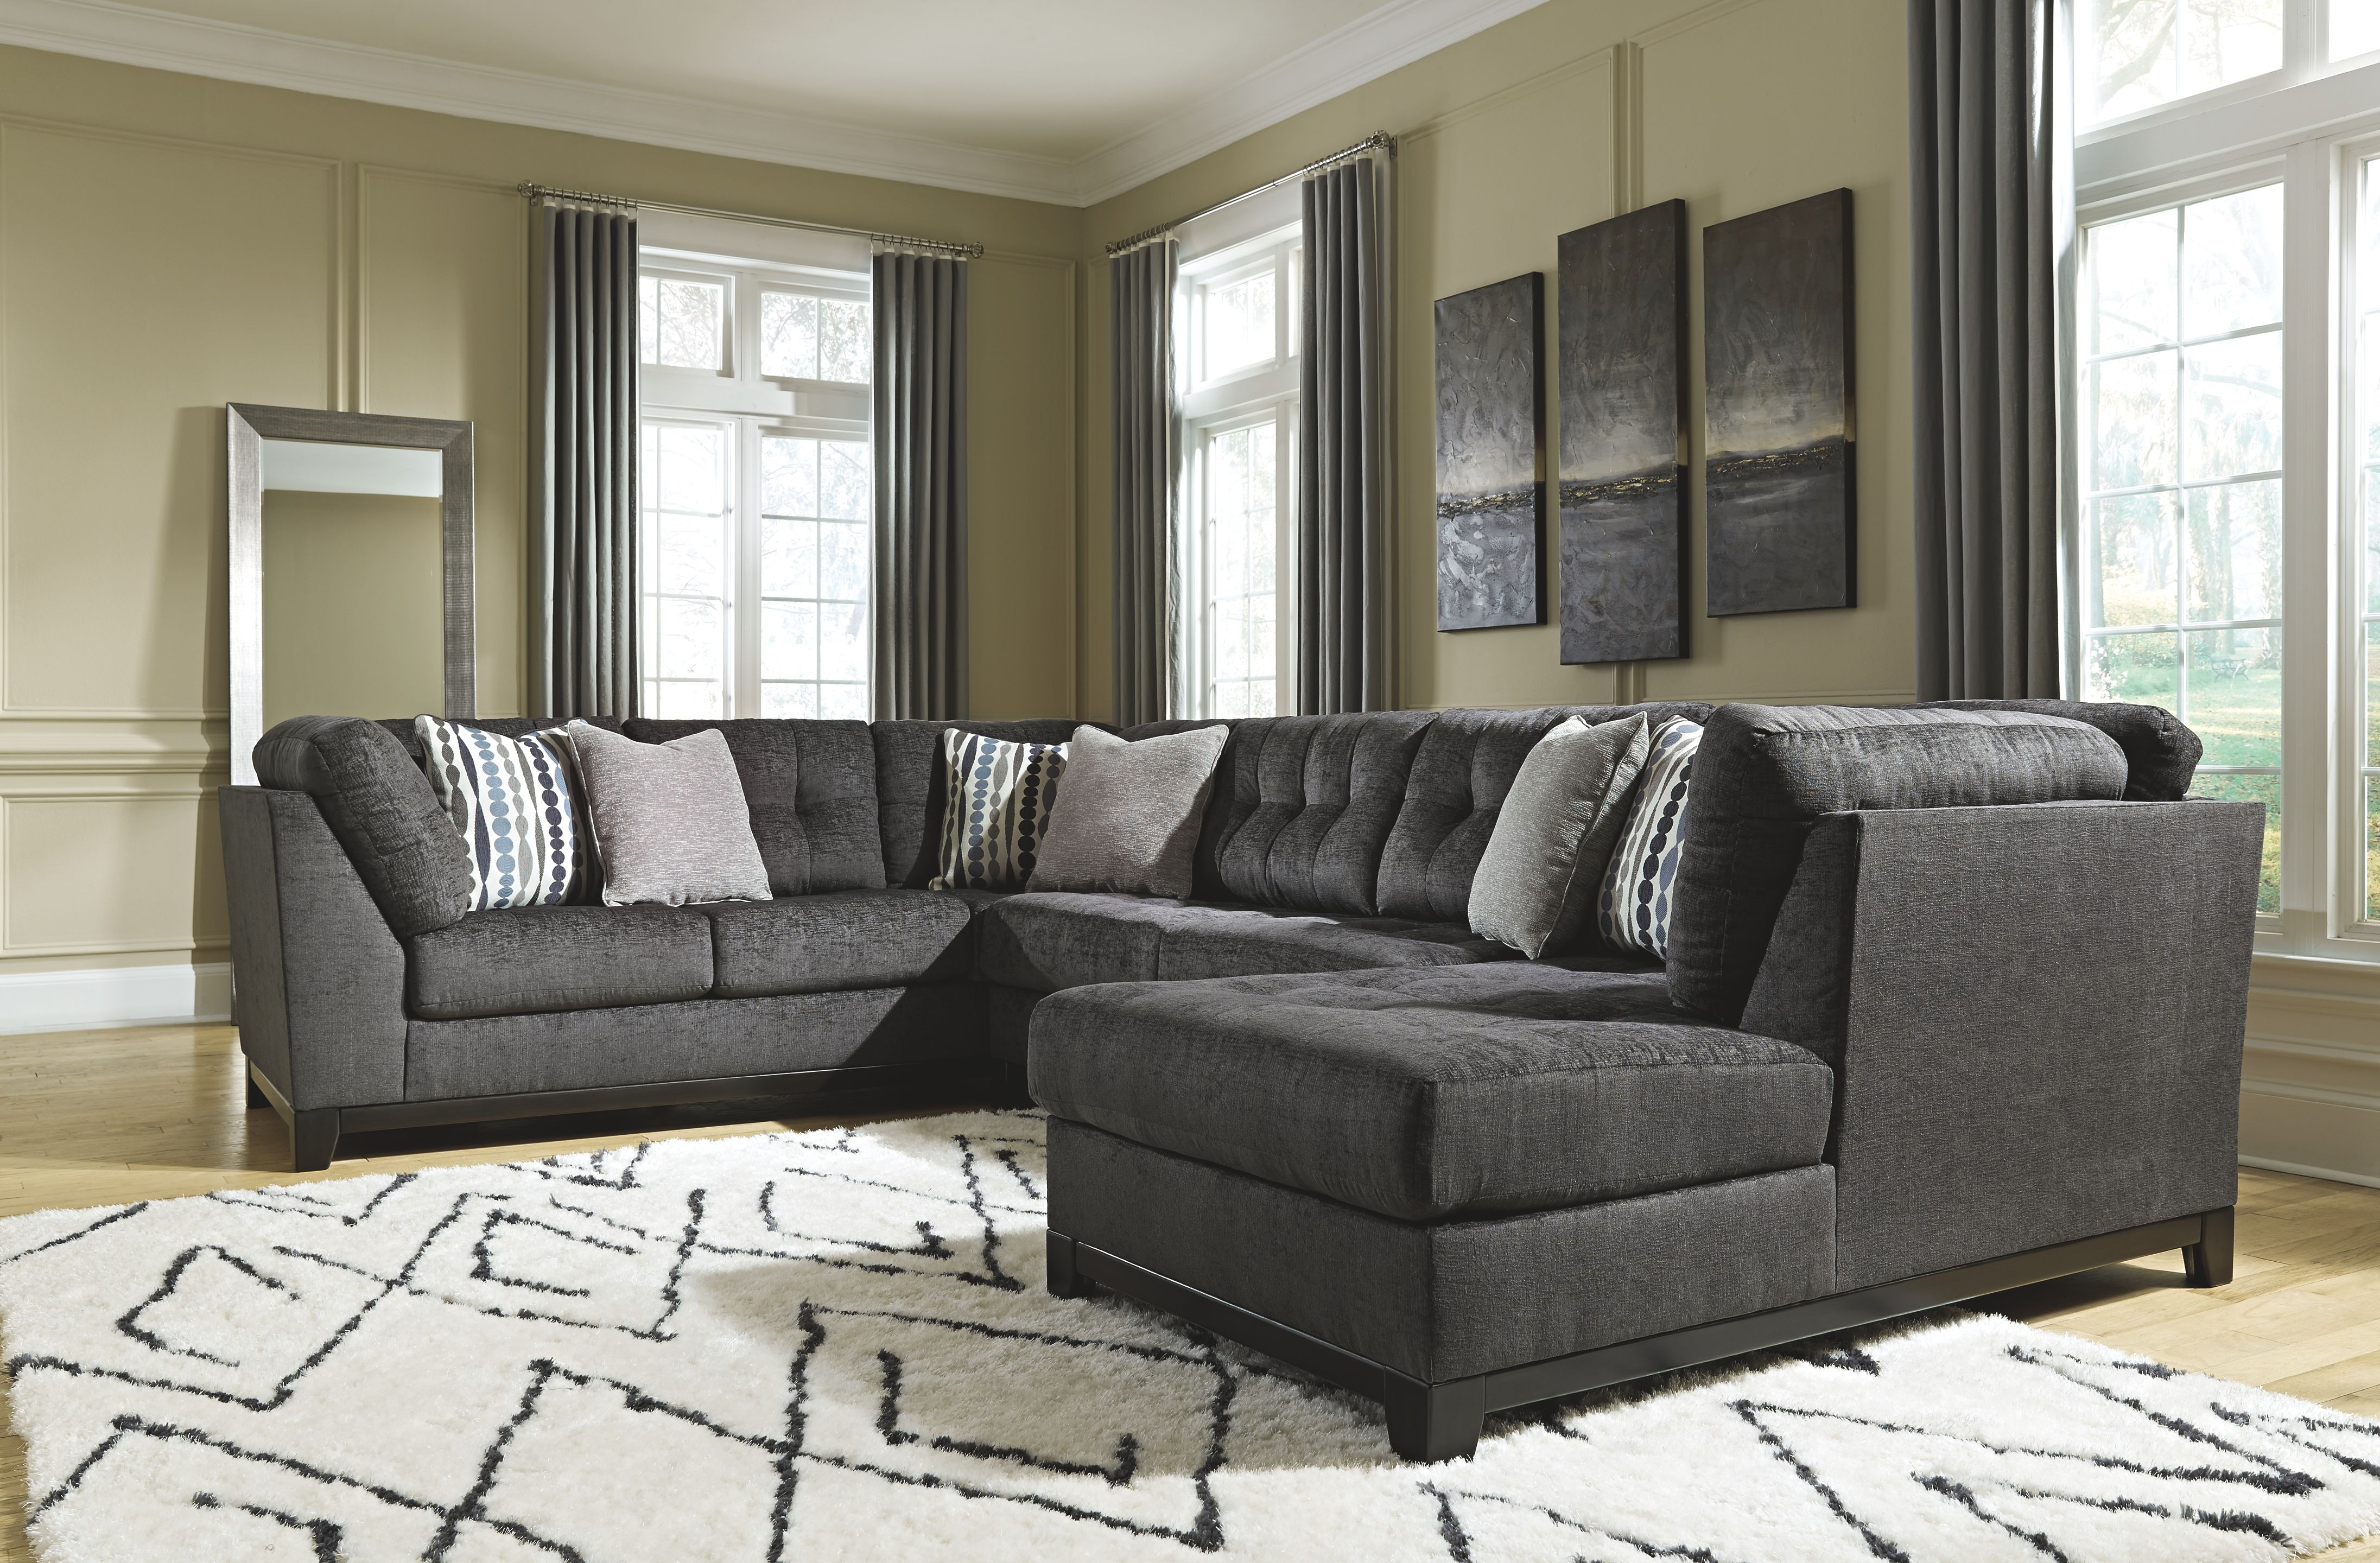 Reidshire 3 Piece Sectional With Chaise Steel Furniture Elegant Living Room Decor 3 Piece Sectional Sofa